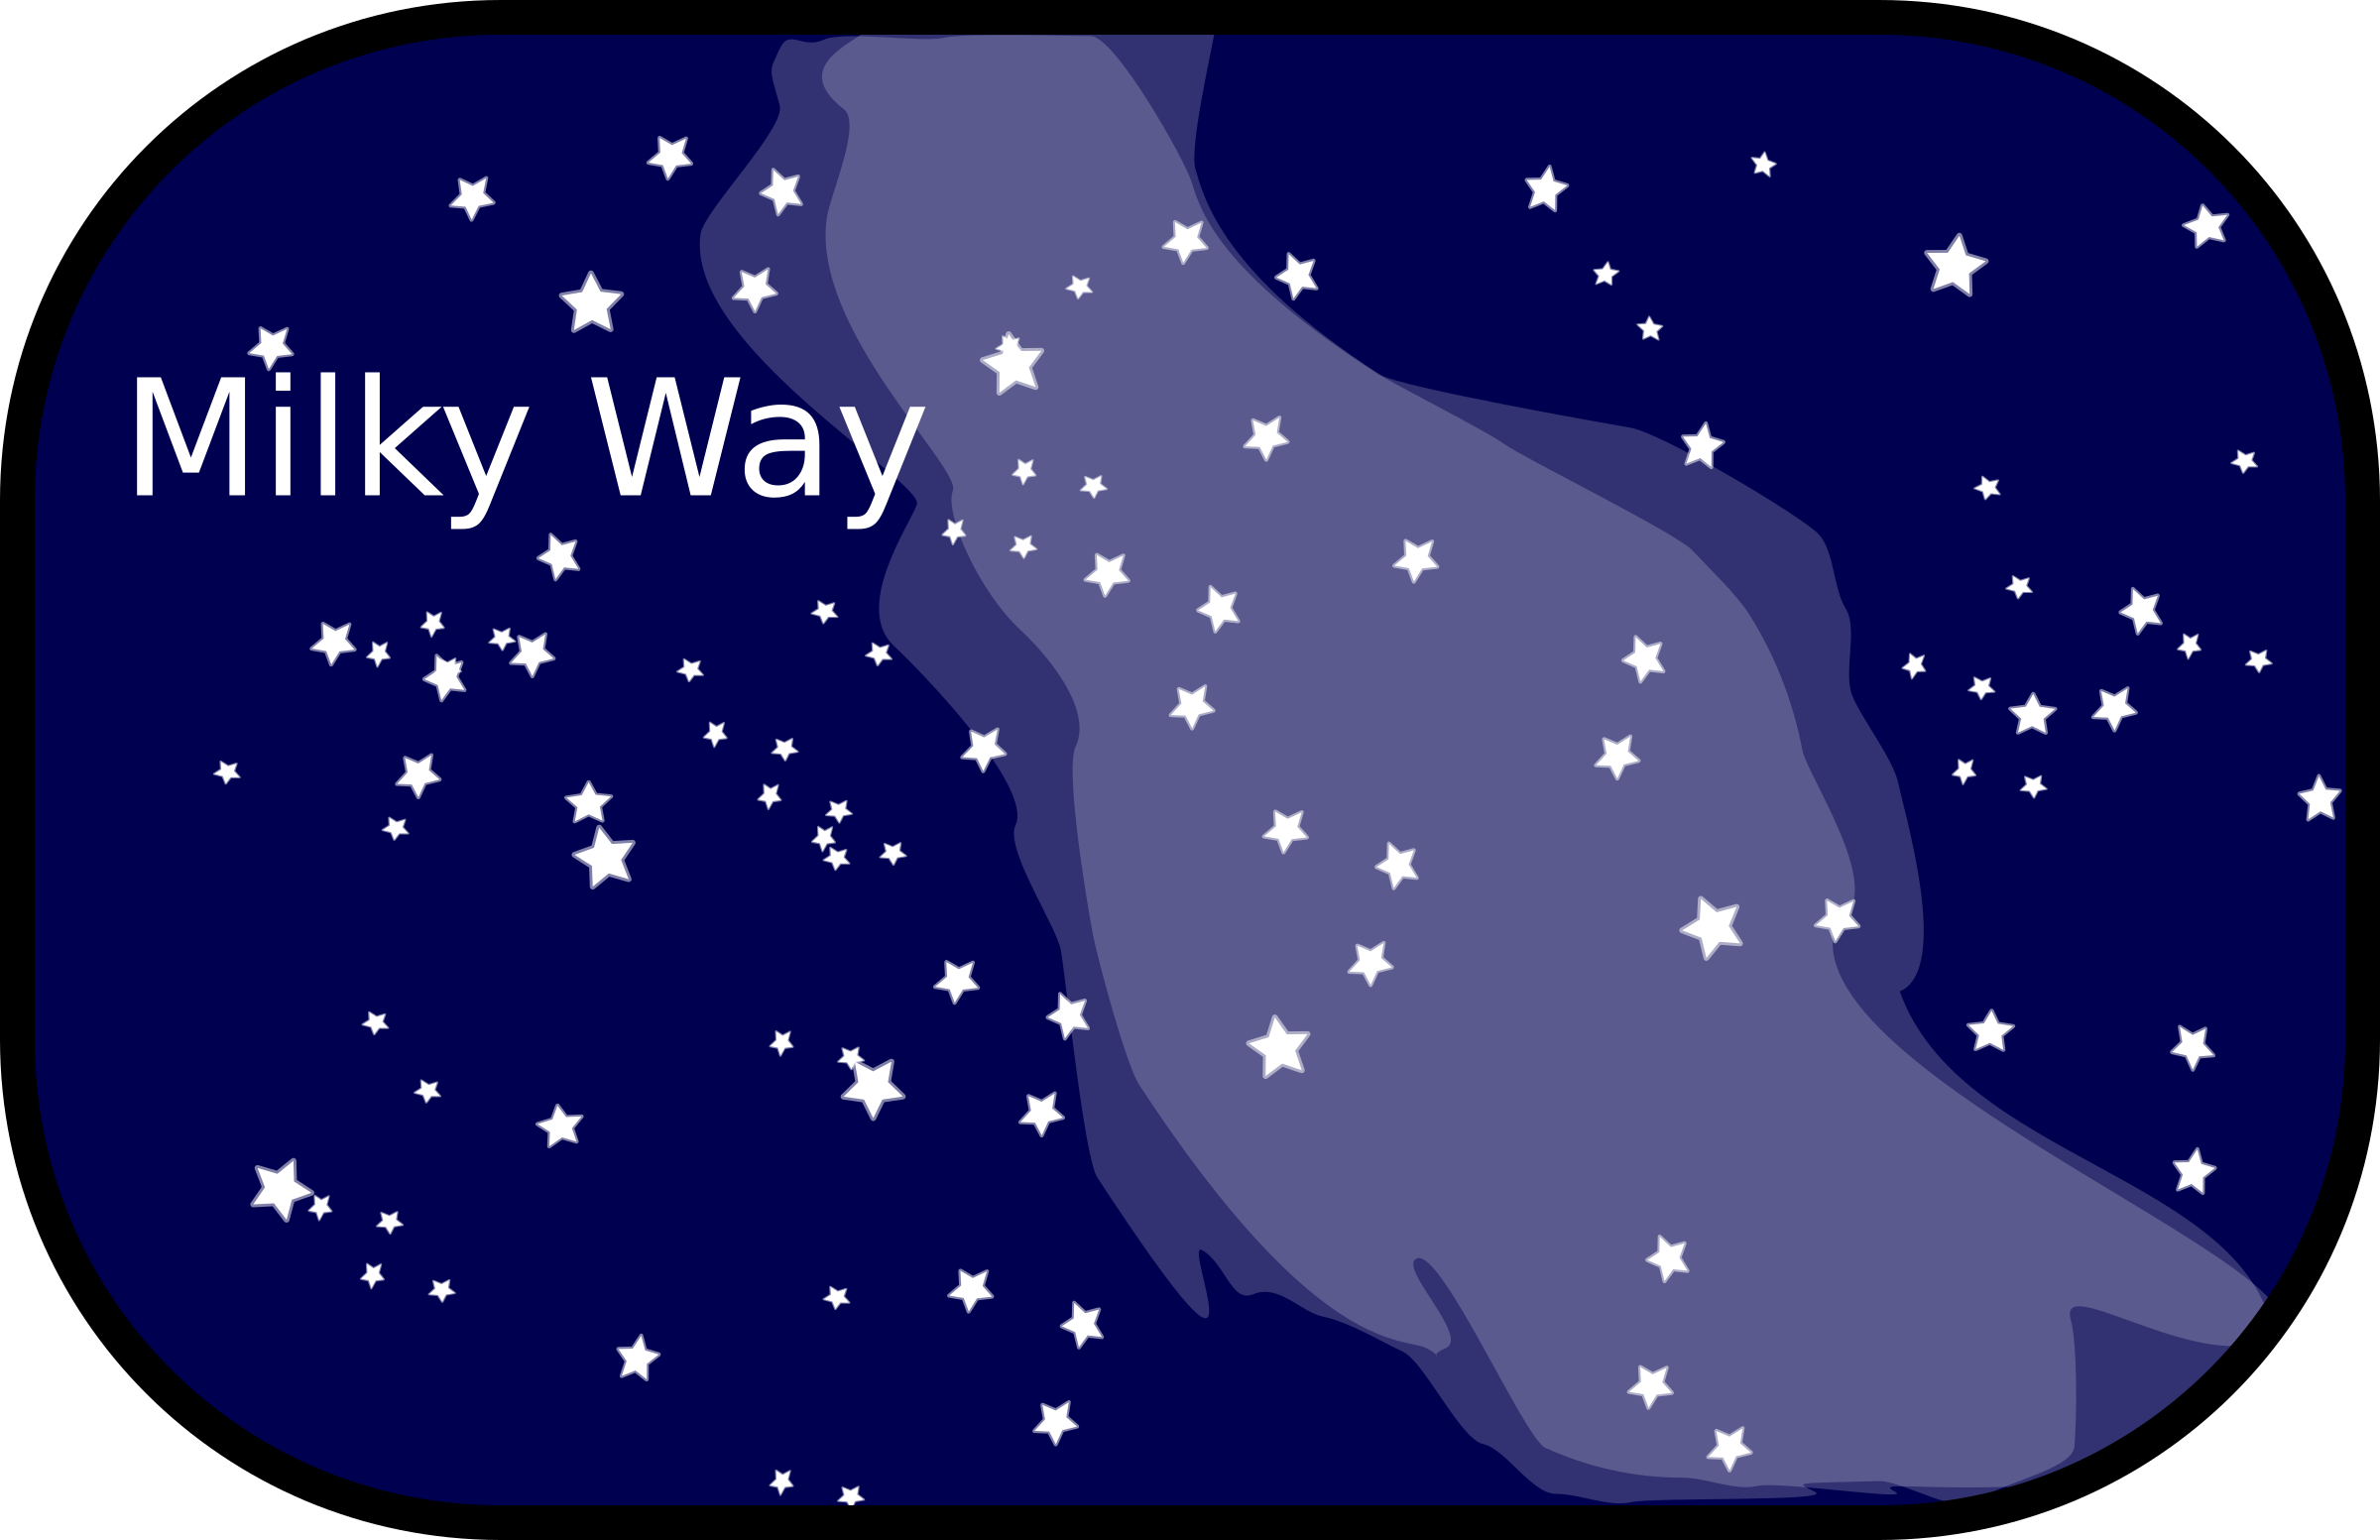 Milky Way clipart #9, Download drawings